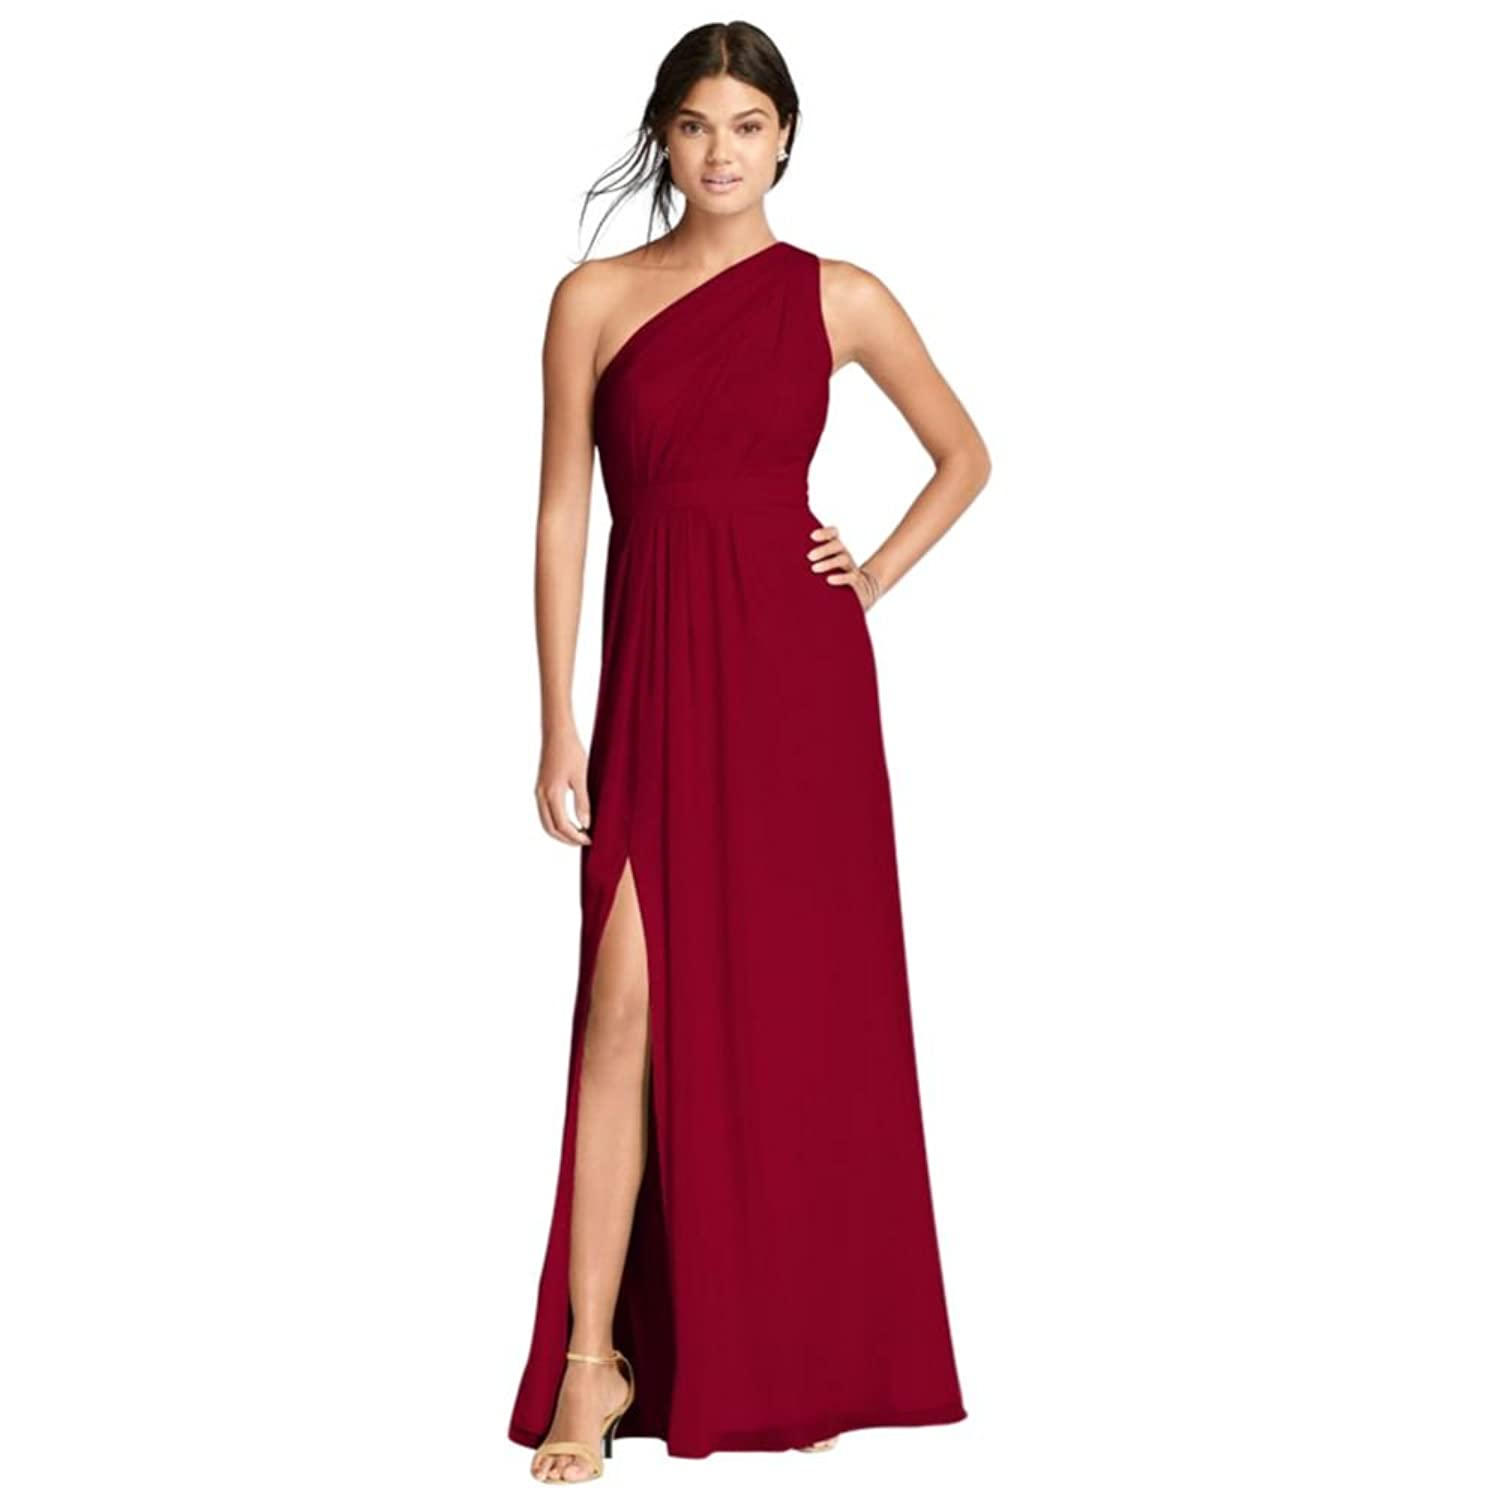 Long chiffon bridesmaid dress with asymmetric neckline style long chiffon bridesmaid dress with asymmetric neckline style f18055 at amazon womens clothing store ombrellifo Image collections